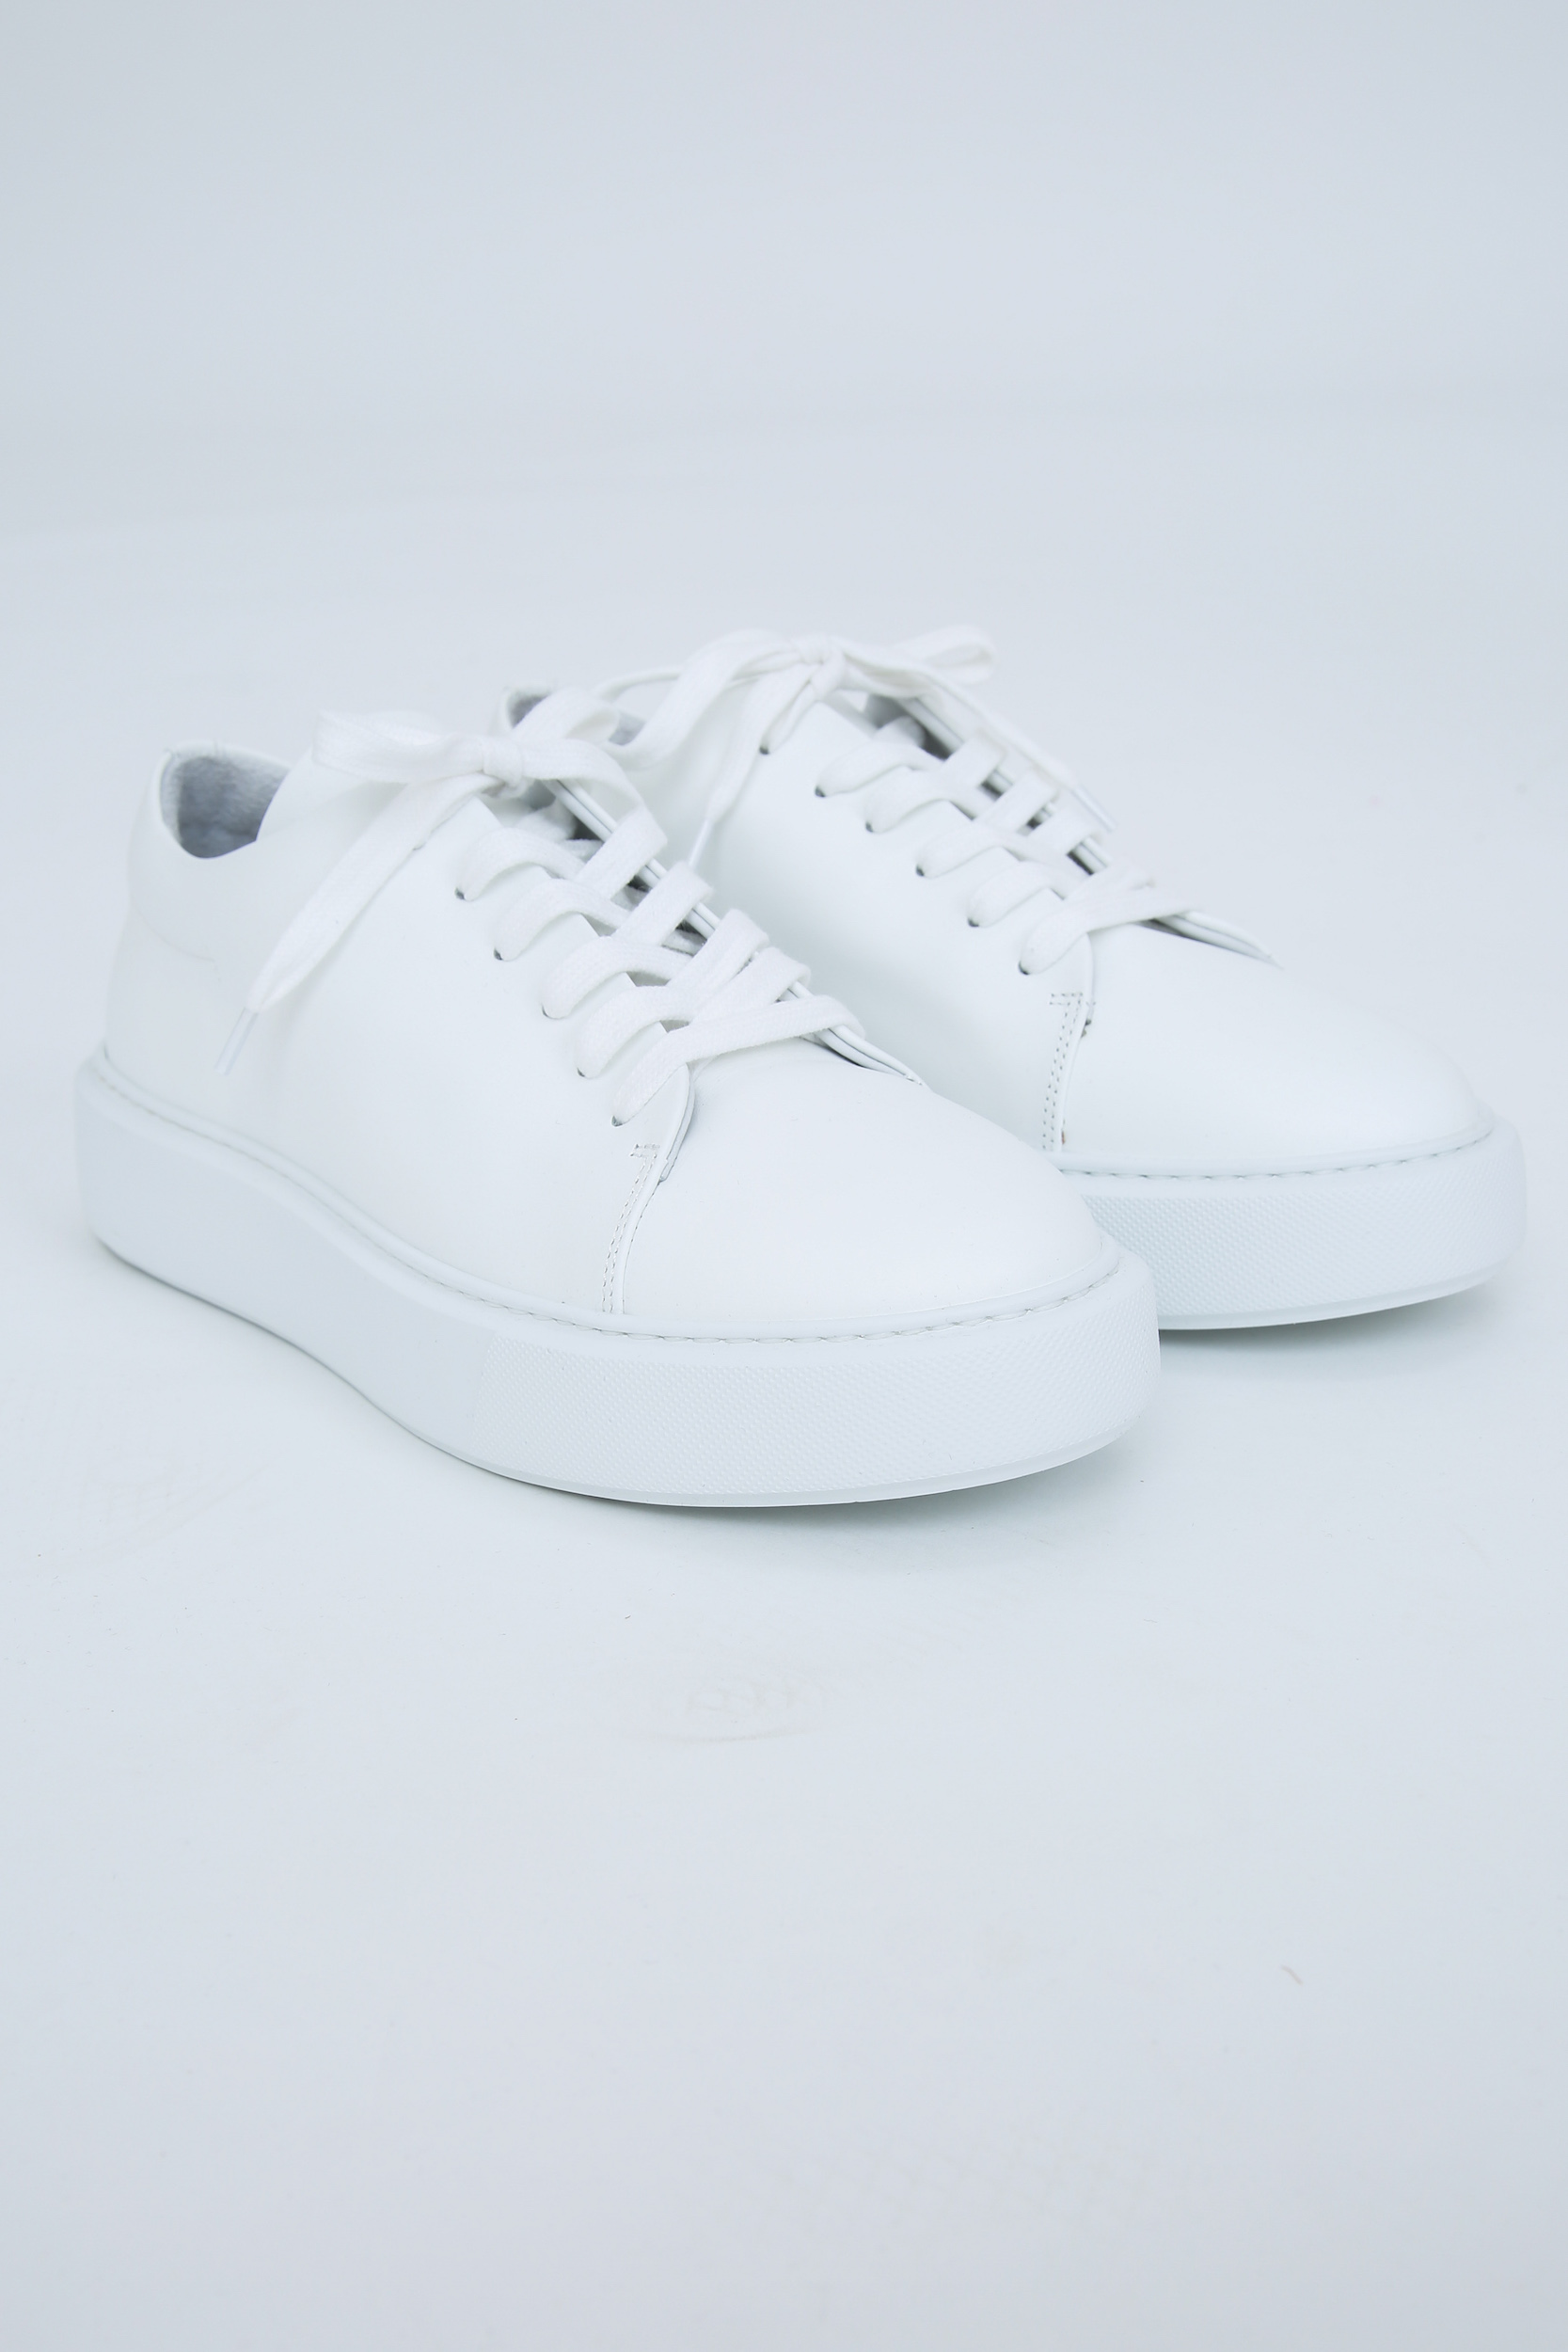 Sneaker CPH407 Vitello White